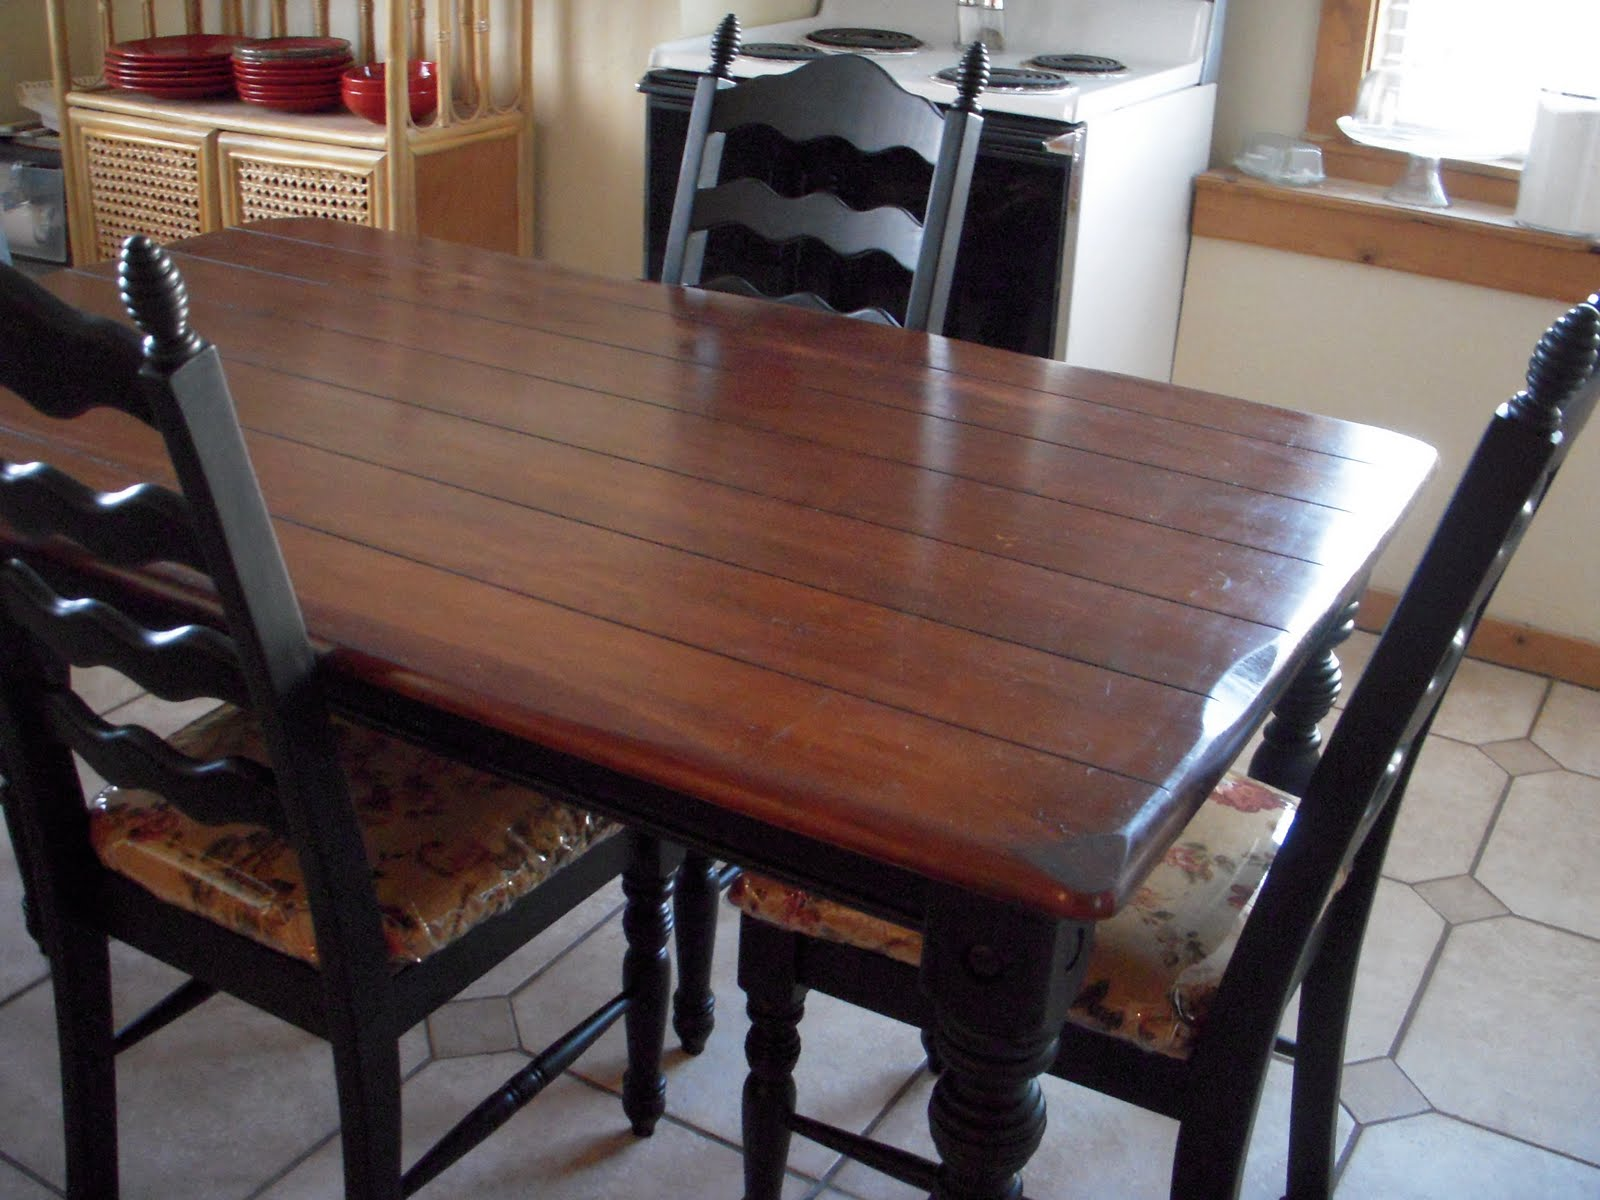 Bastelkram Dining Table Redo